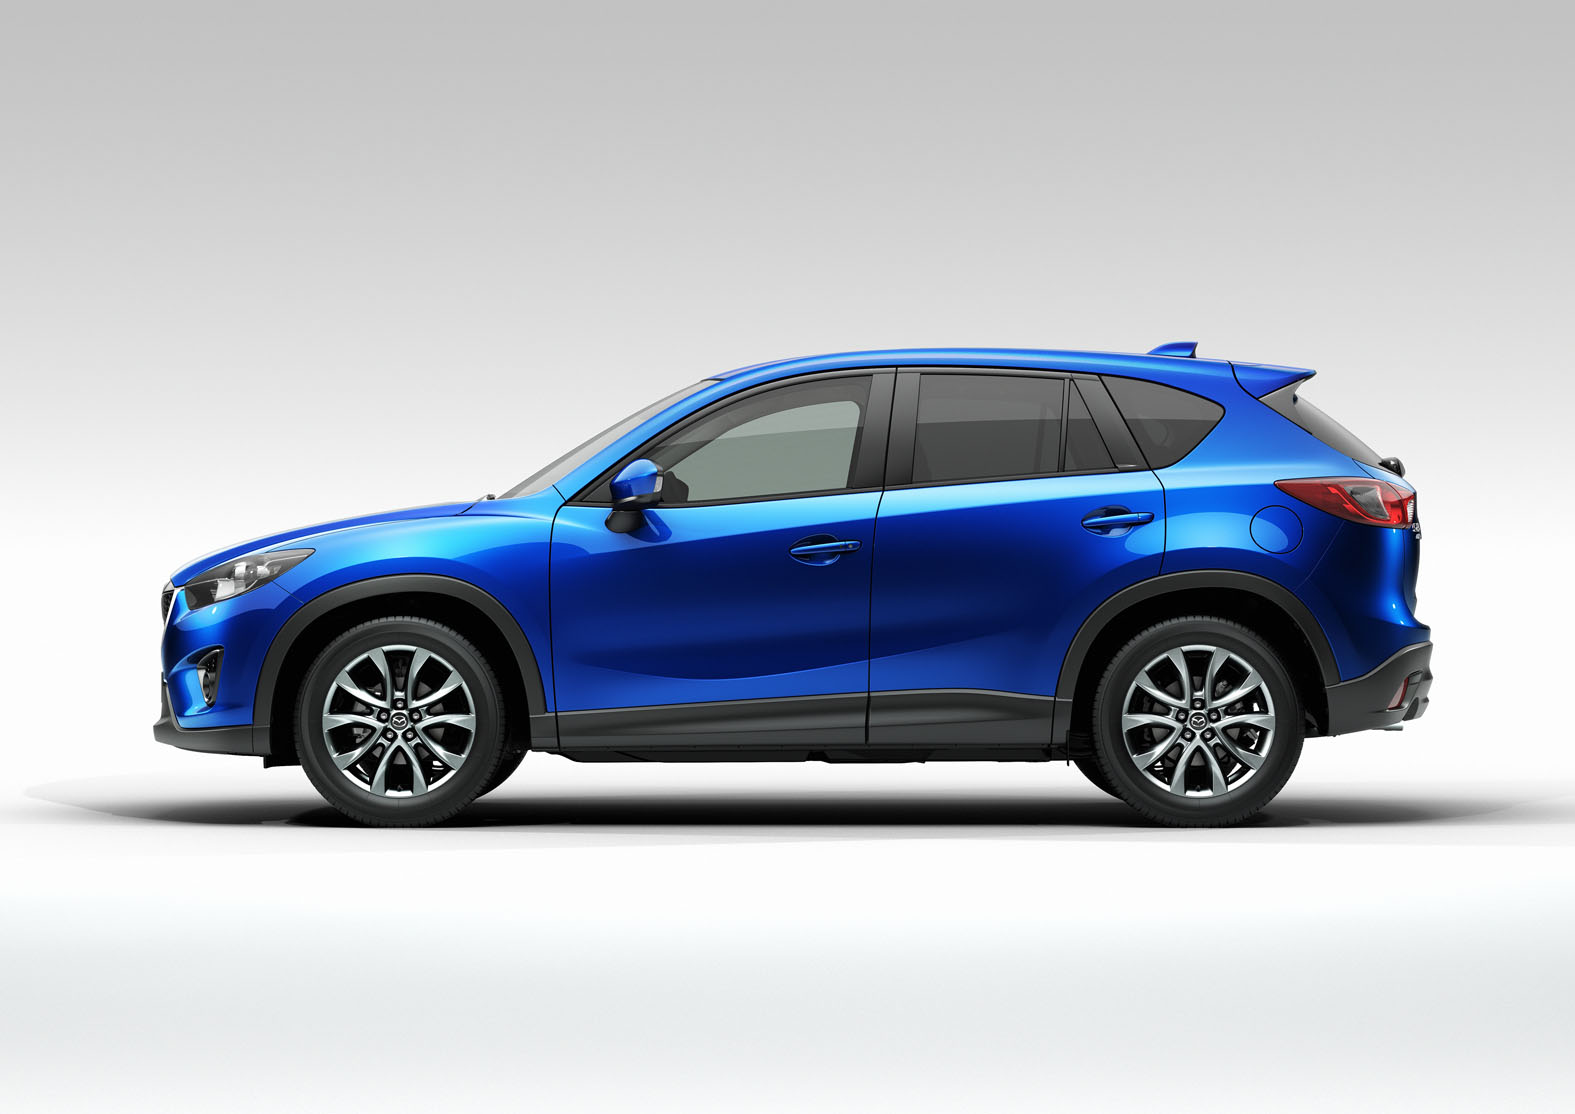 2012 mazda cx-5 urban review - top speed